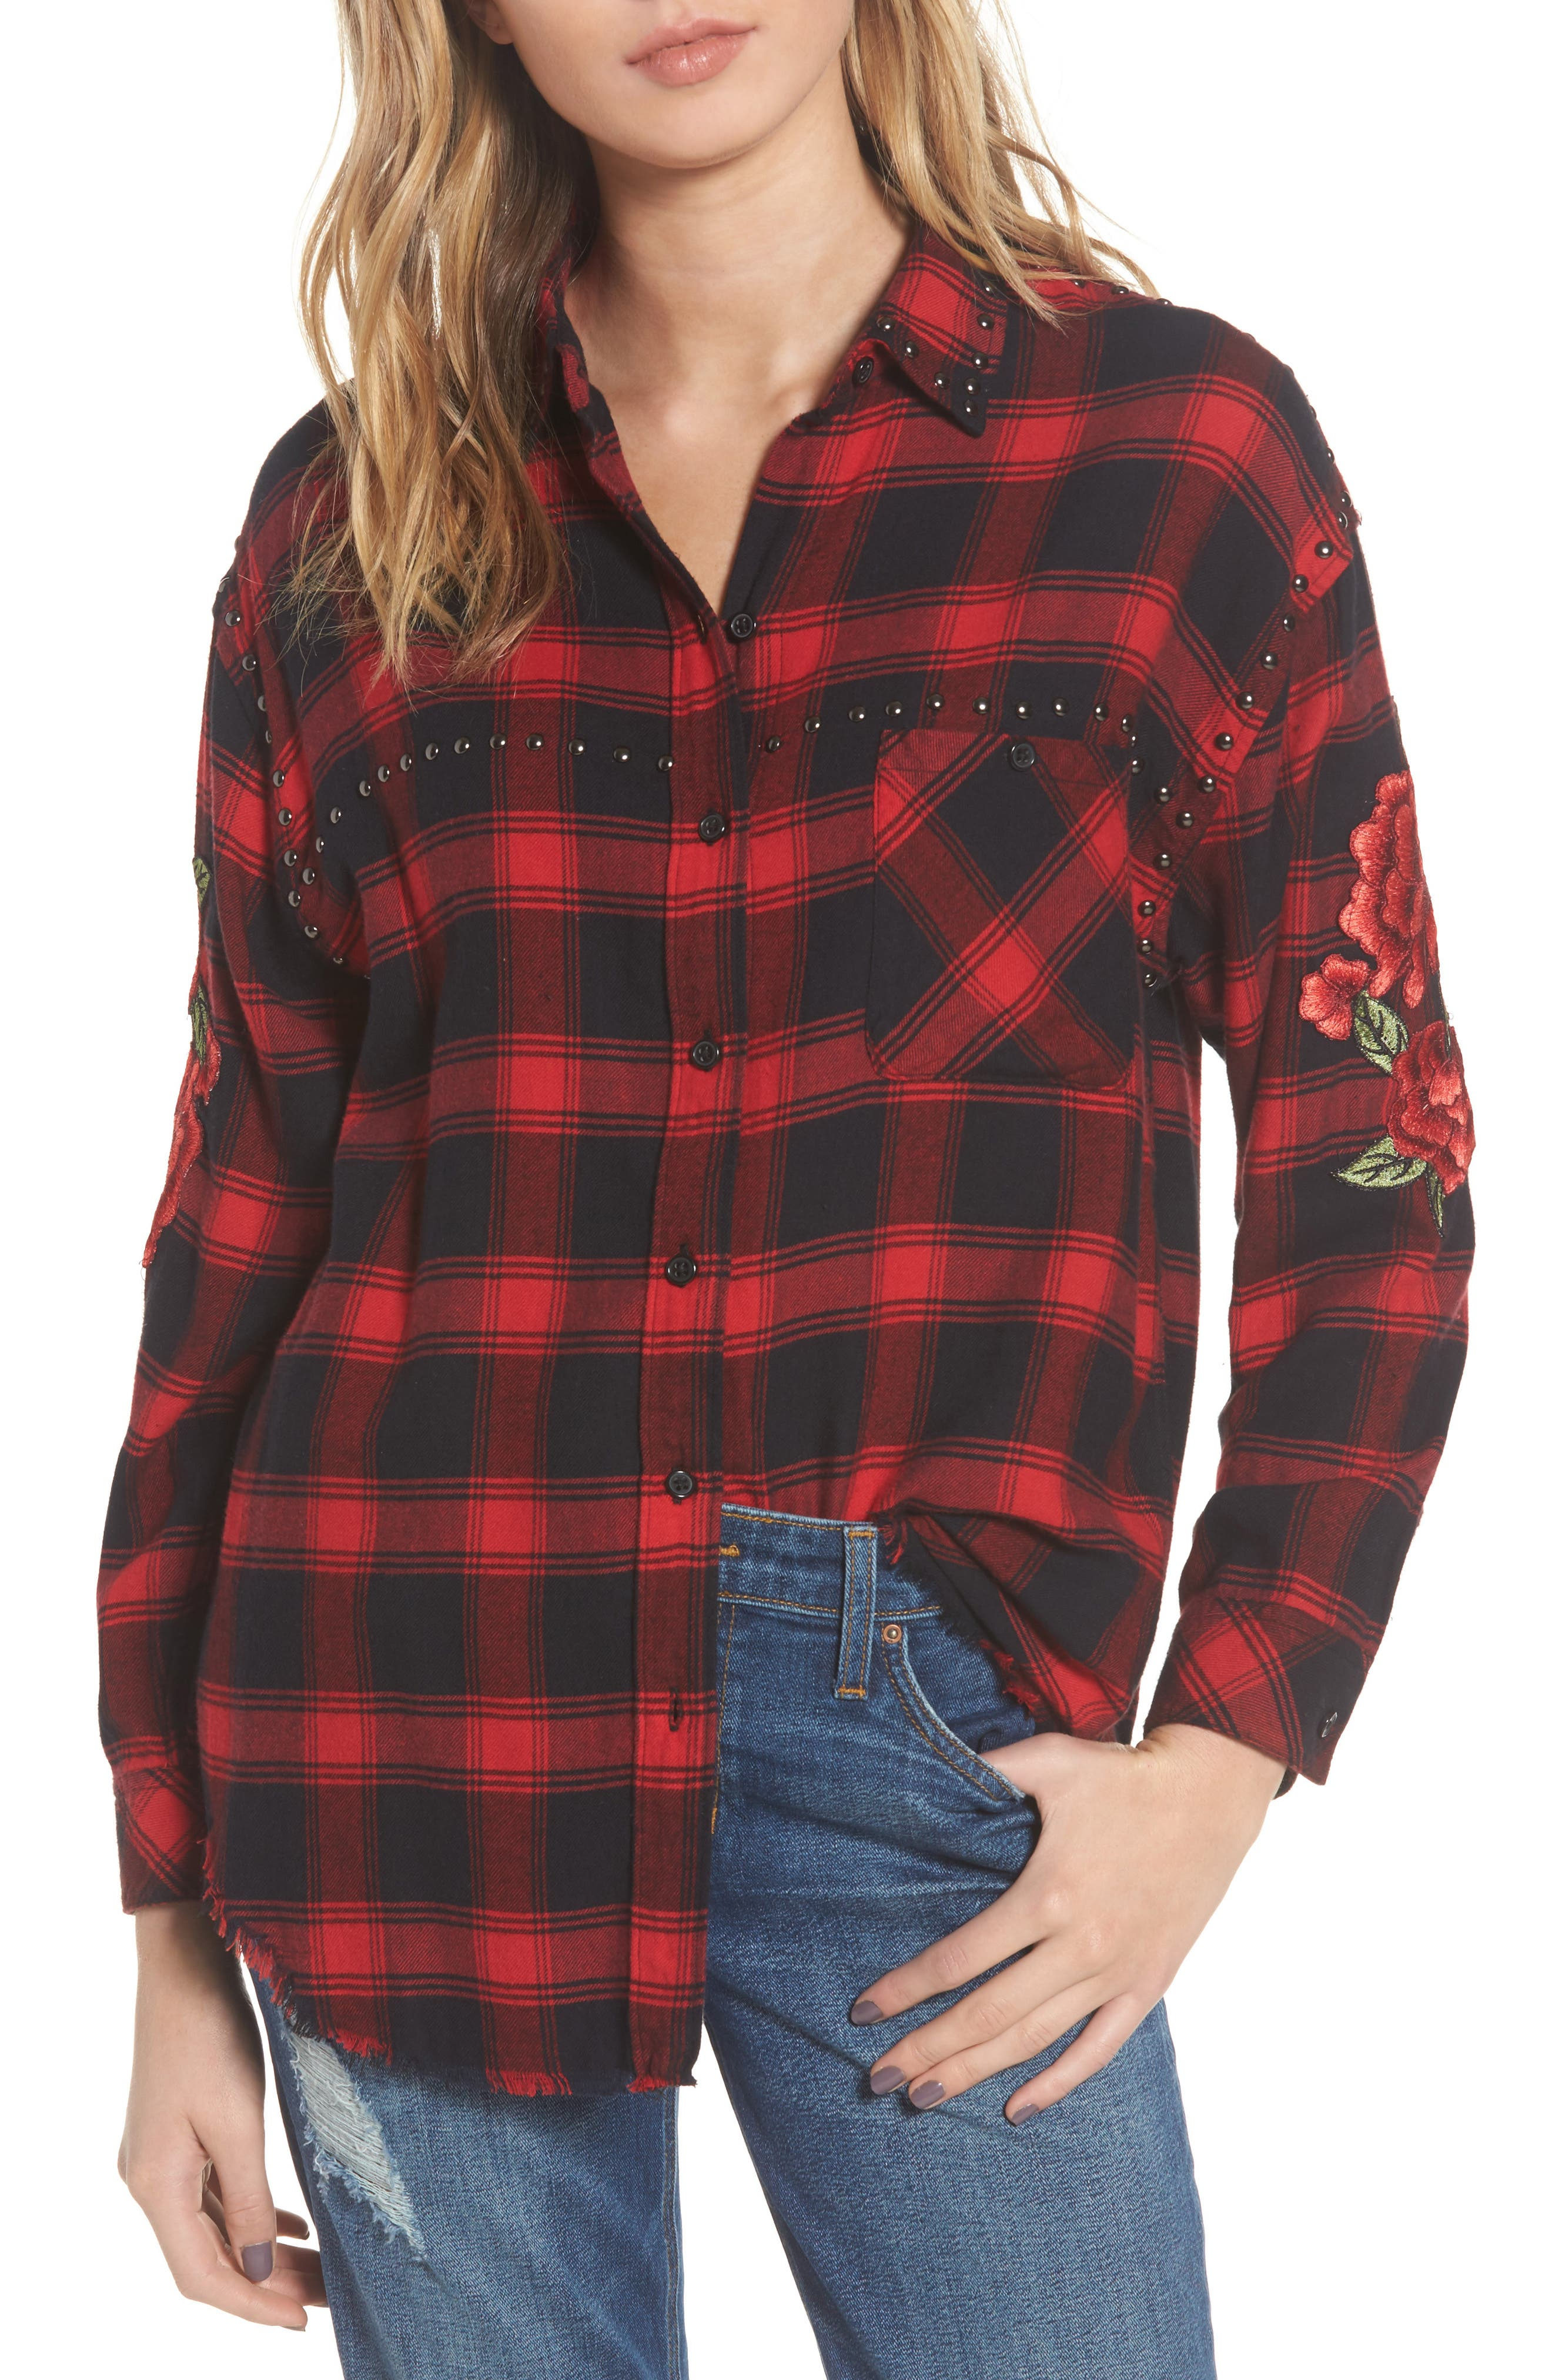 Owen Studded Plaid Shirt,                         Main,                         color, Red Cherry Patch